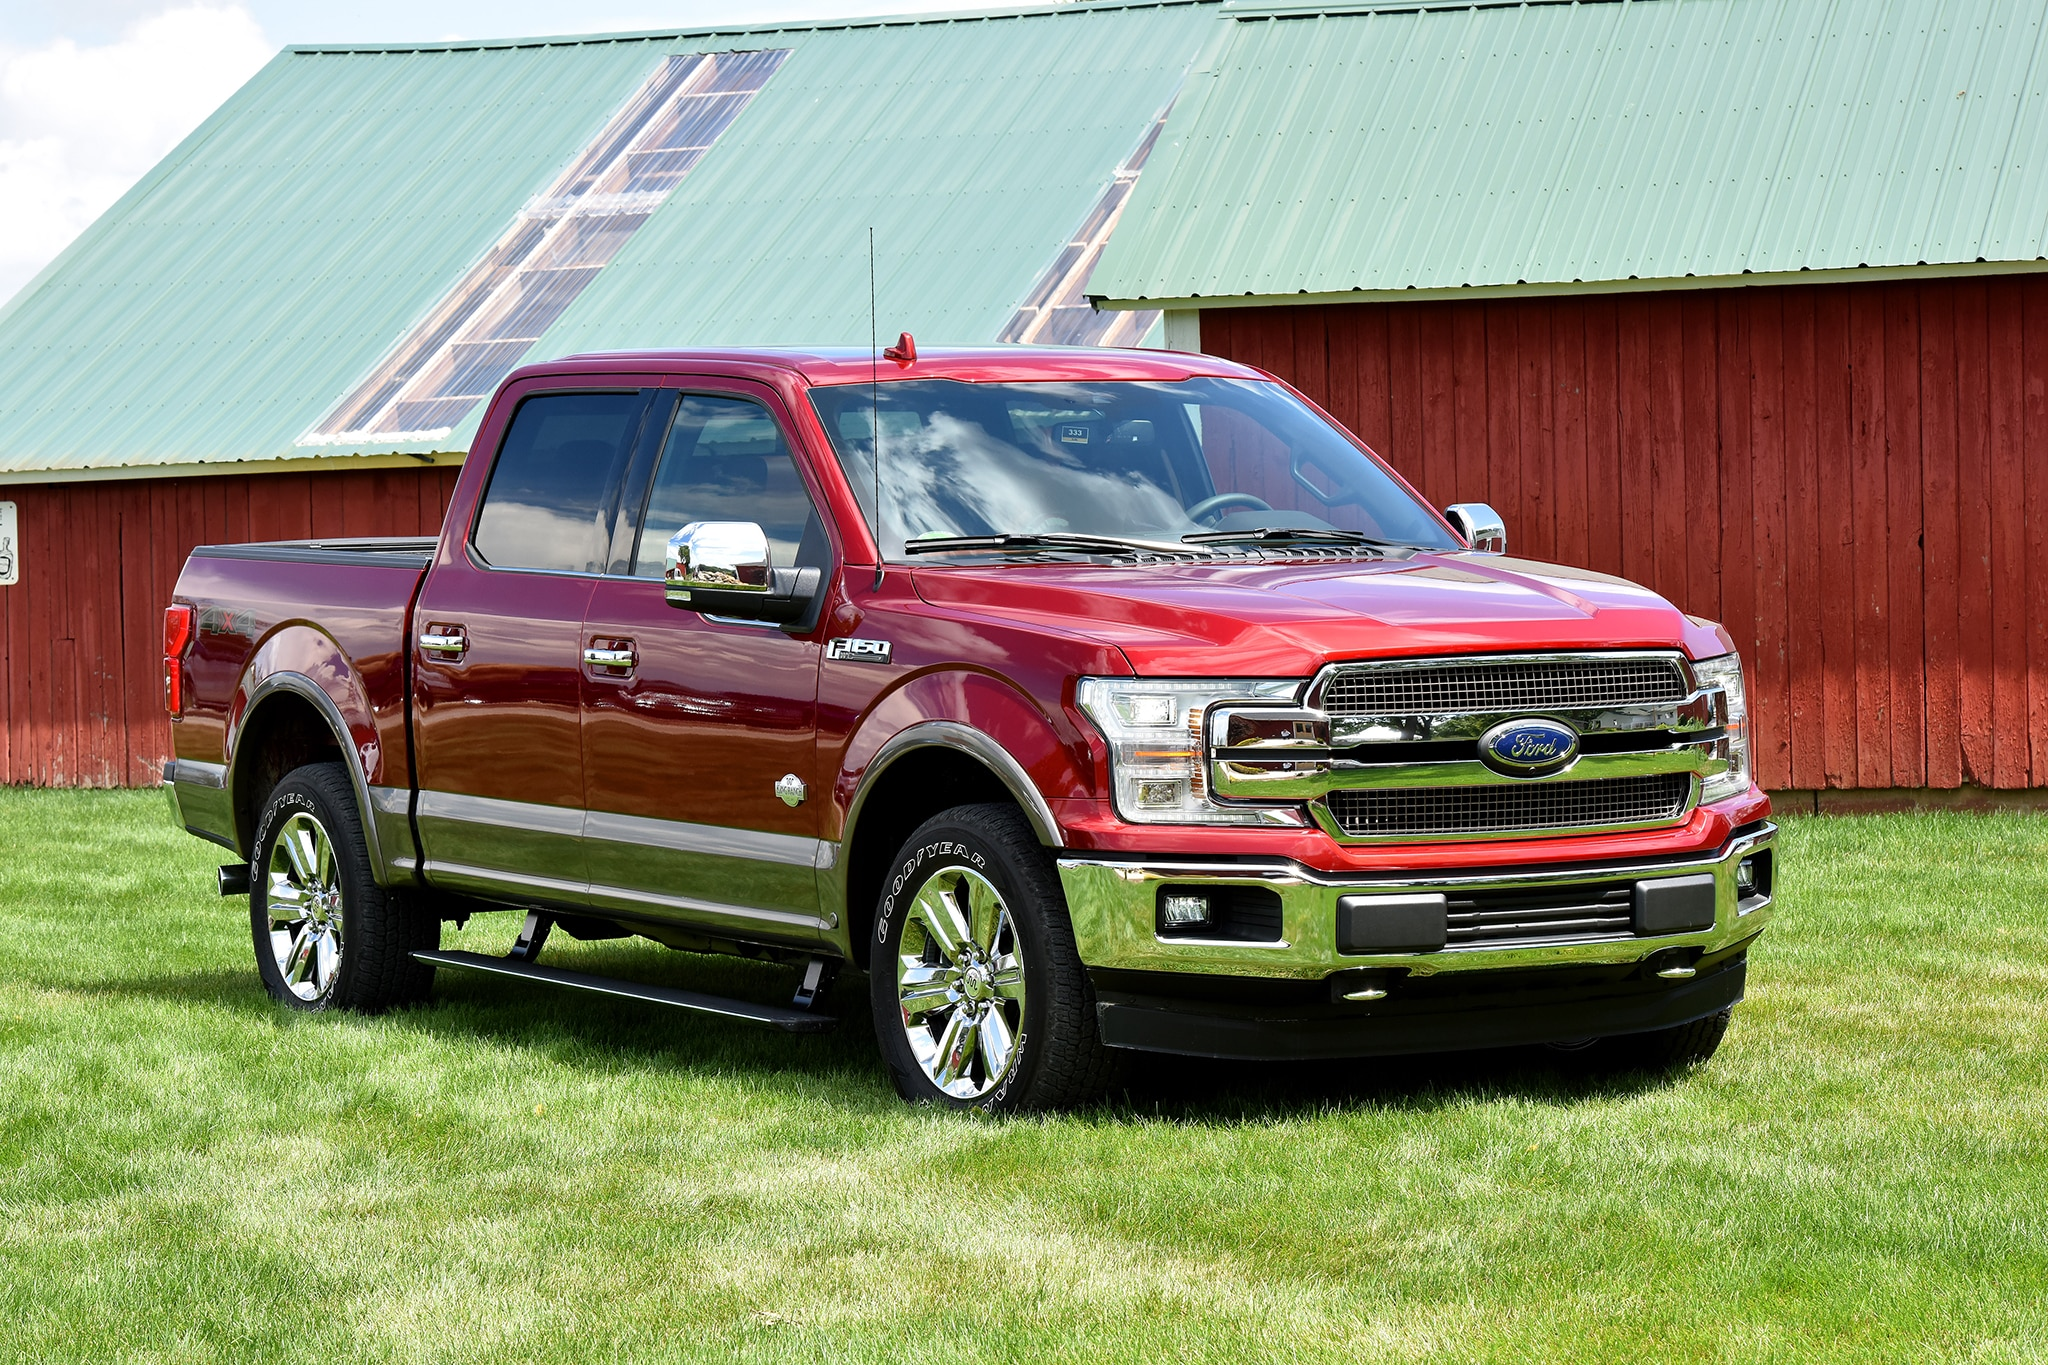 2018 ford f150 claims big numbers 13200 lbs of max. Black Bedroom Furniture Sets. Home Design Ideas